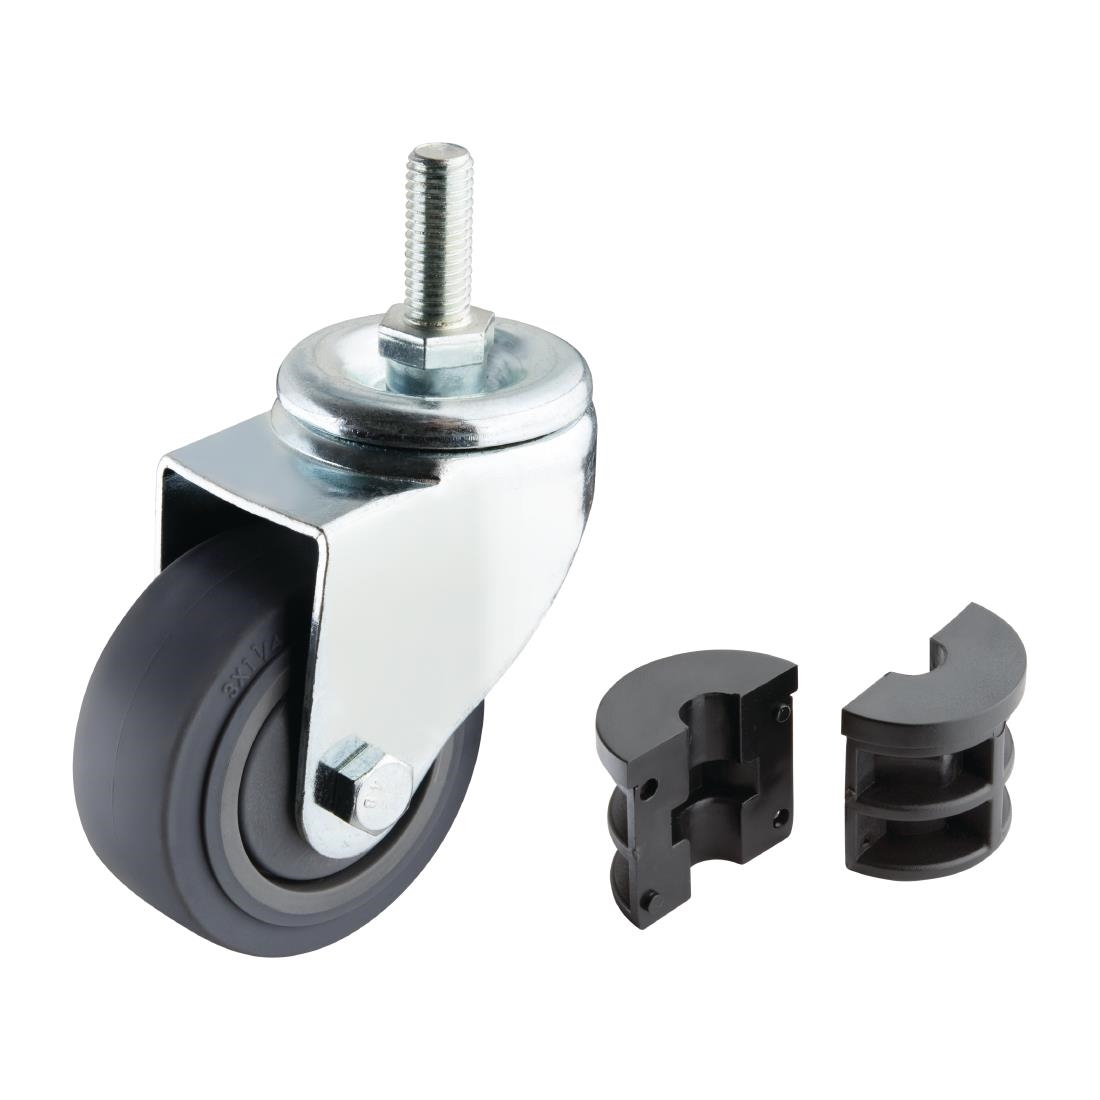 Vogue Castors for Vogue Stainless Steel Tables (Pack of 4) Pack of 4